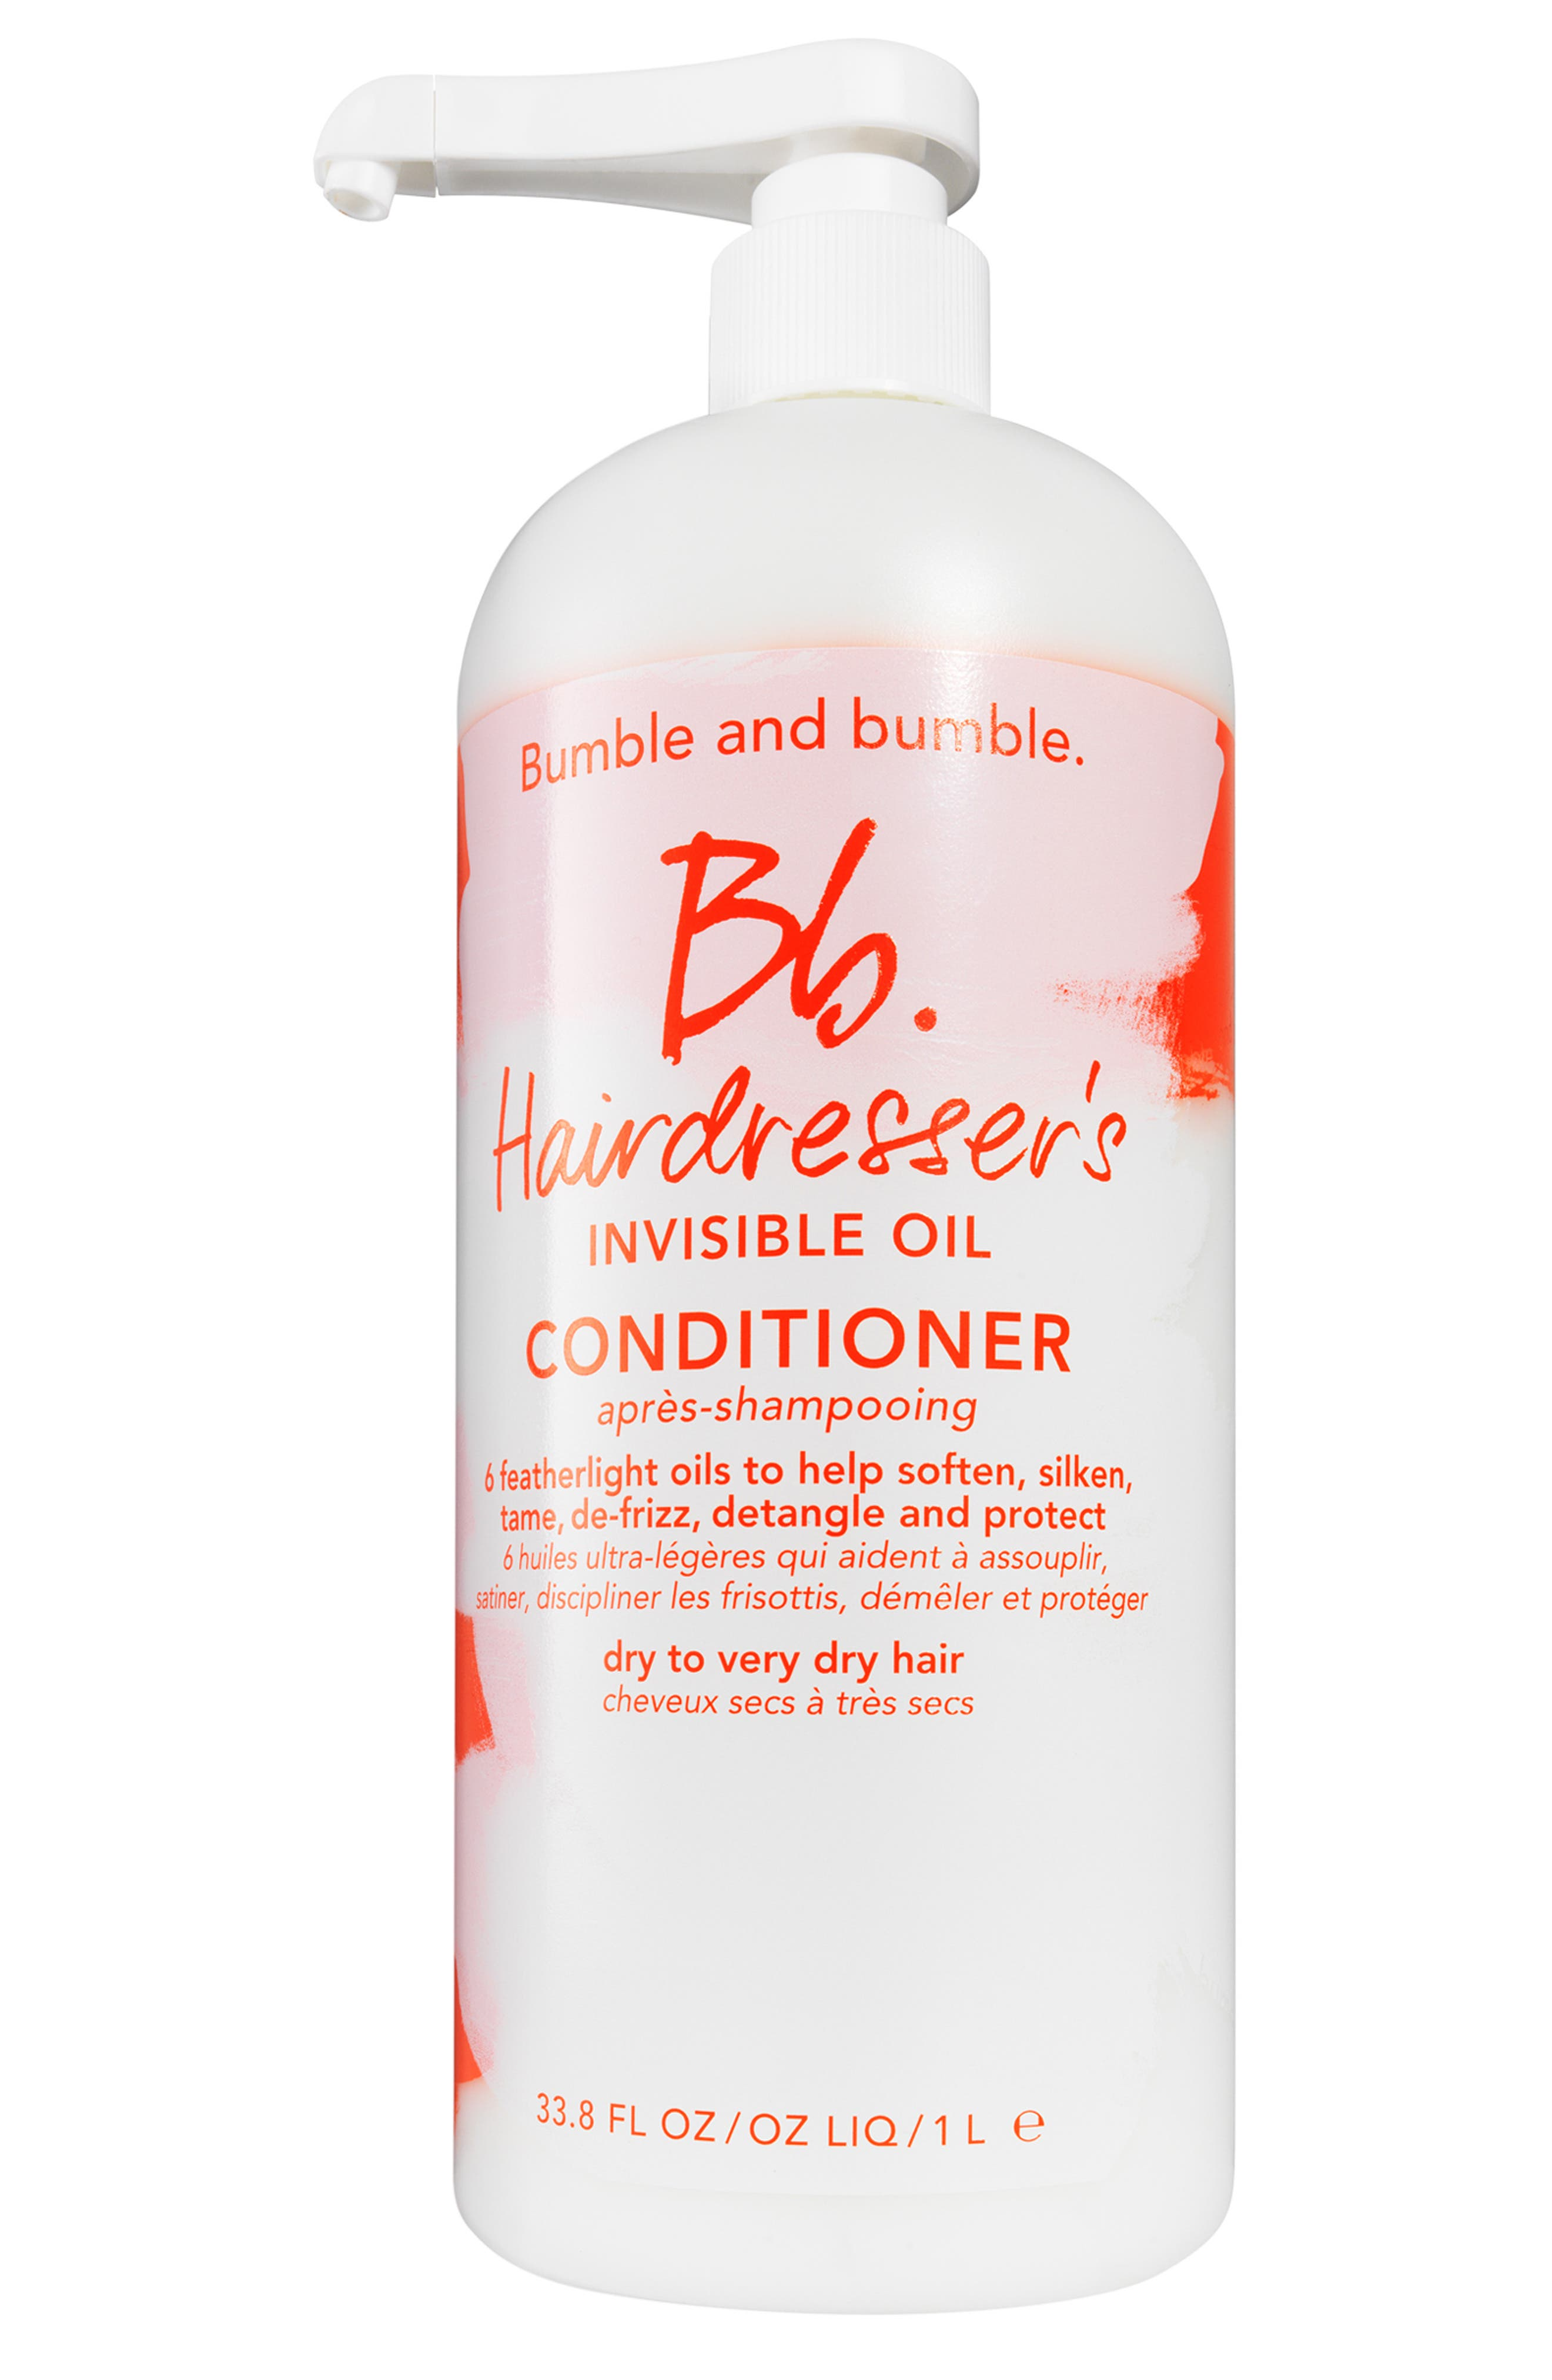 Hairdresser's Invisible Oil Conditioner,                             Alternate thumbnail 4, color,                             NO COLOR